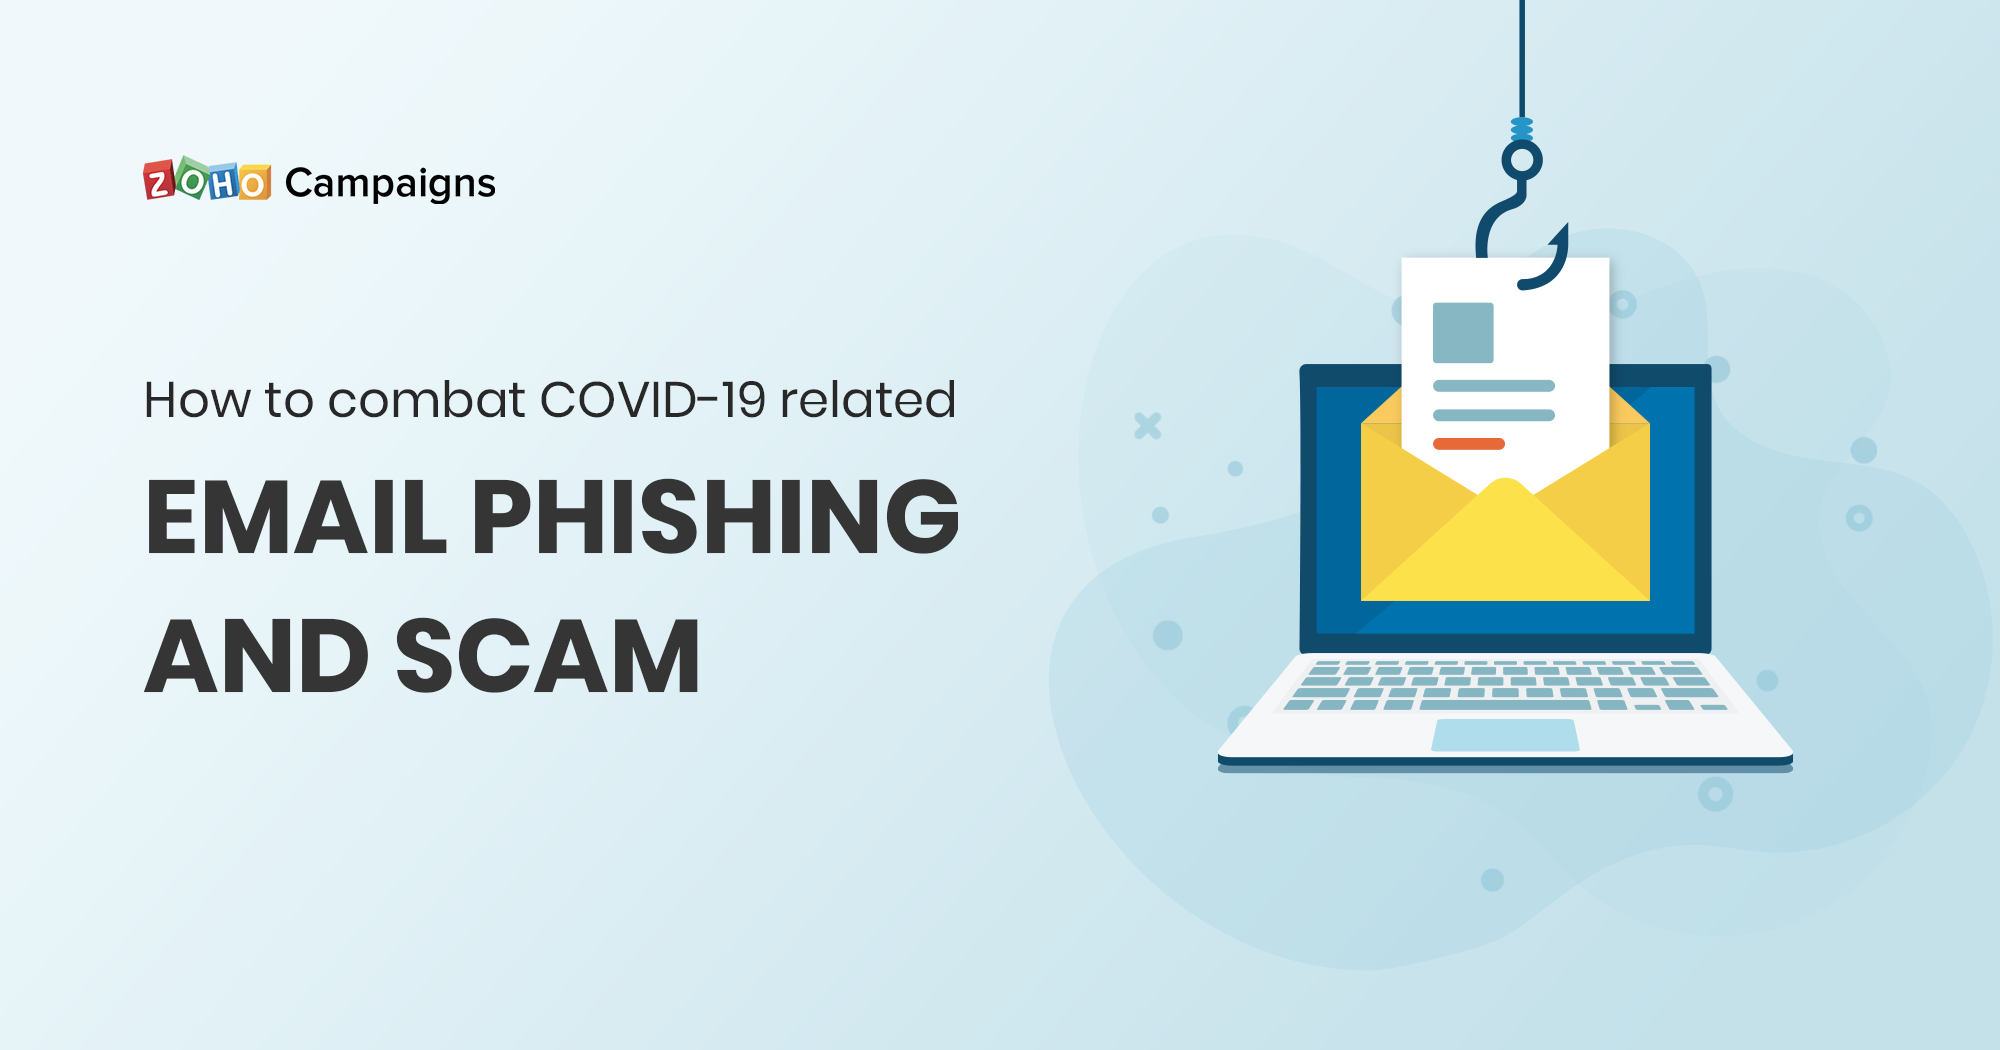 How to combat email phishing and scams related to COVID-19